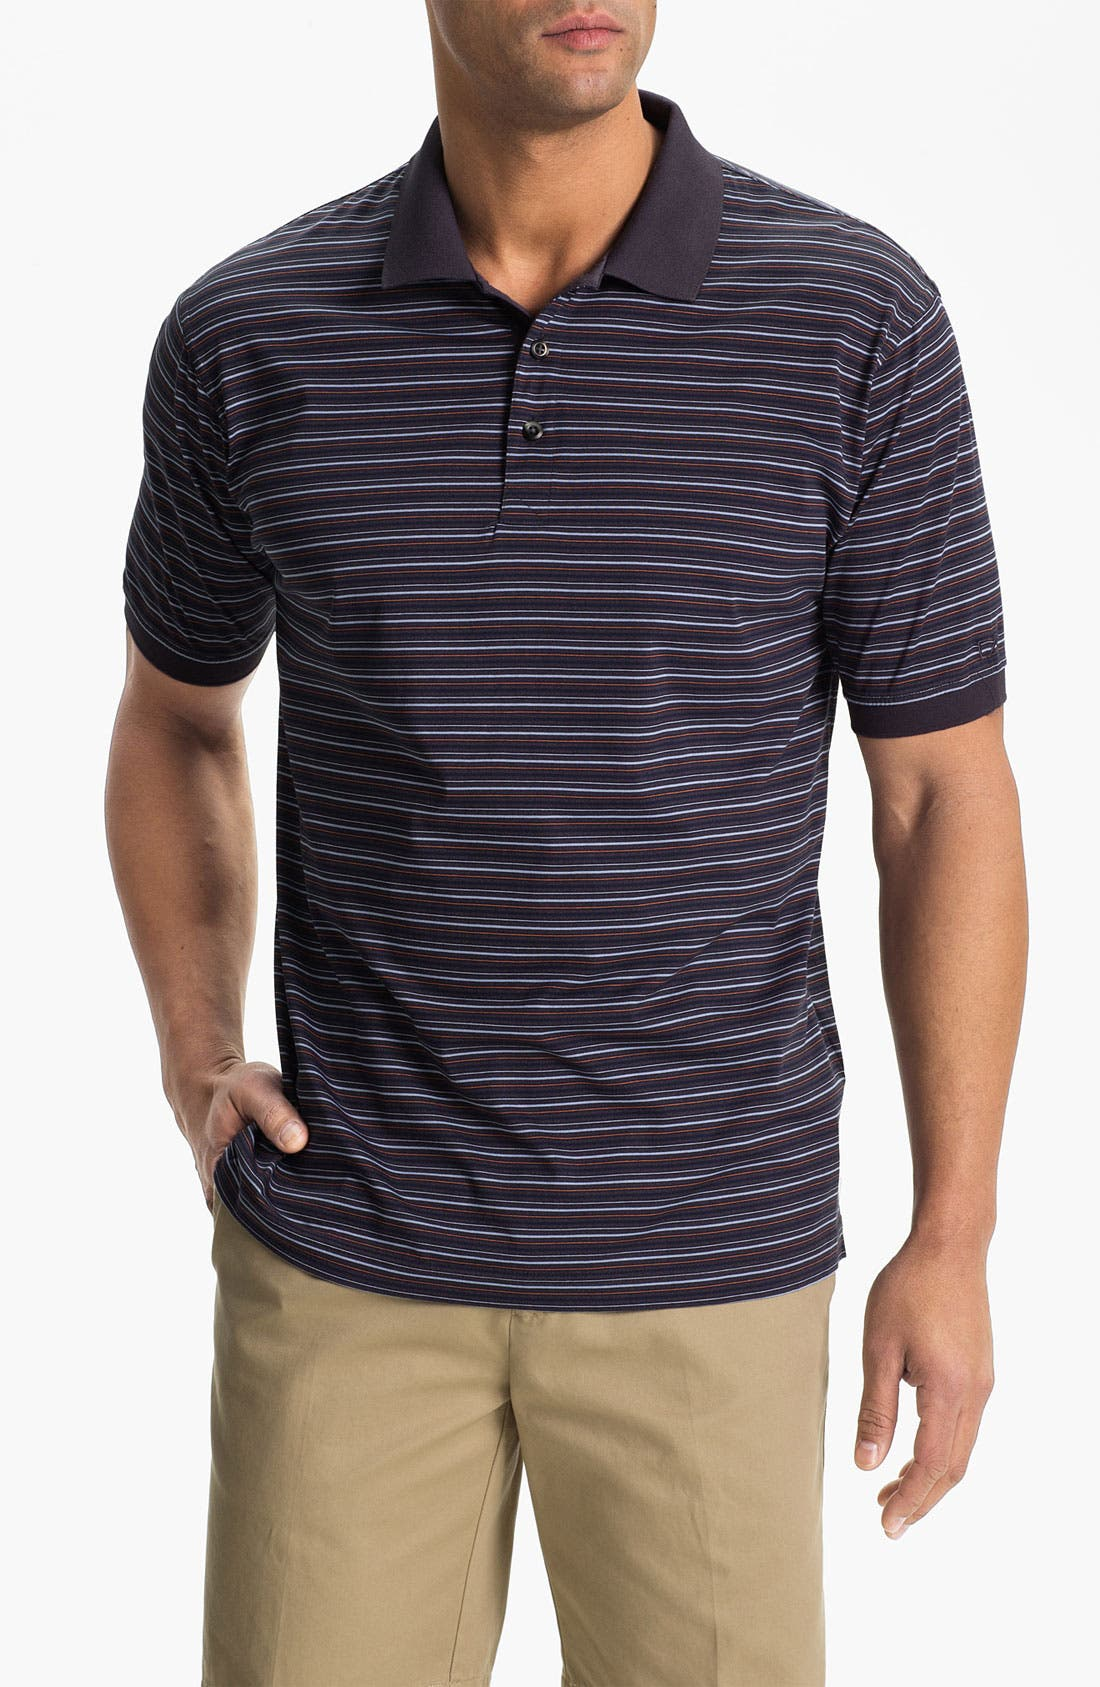 Alternate Image 1 Selected - Cutter & Buck '70/2's Performance Andrew Stripe' Regular Fit Polo (Online Only)